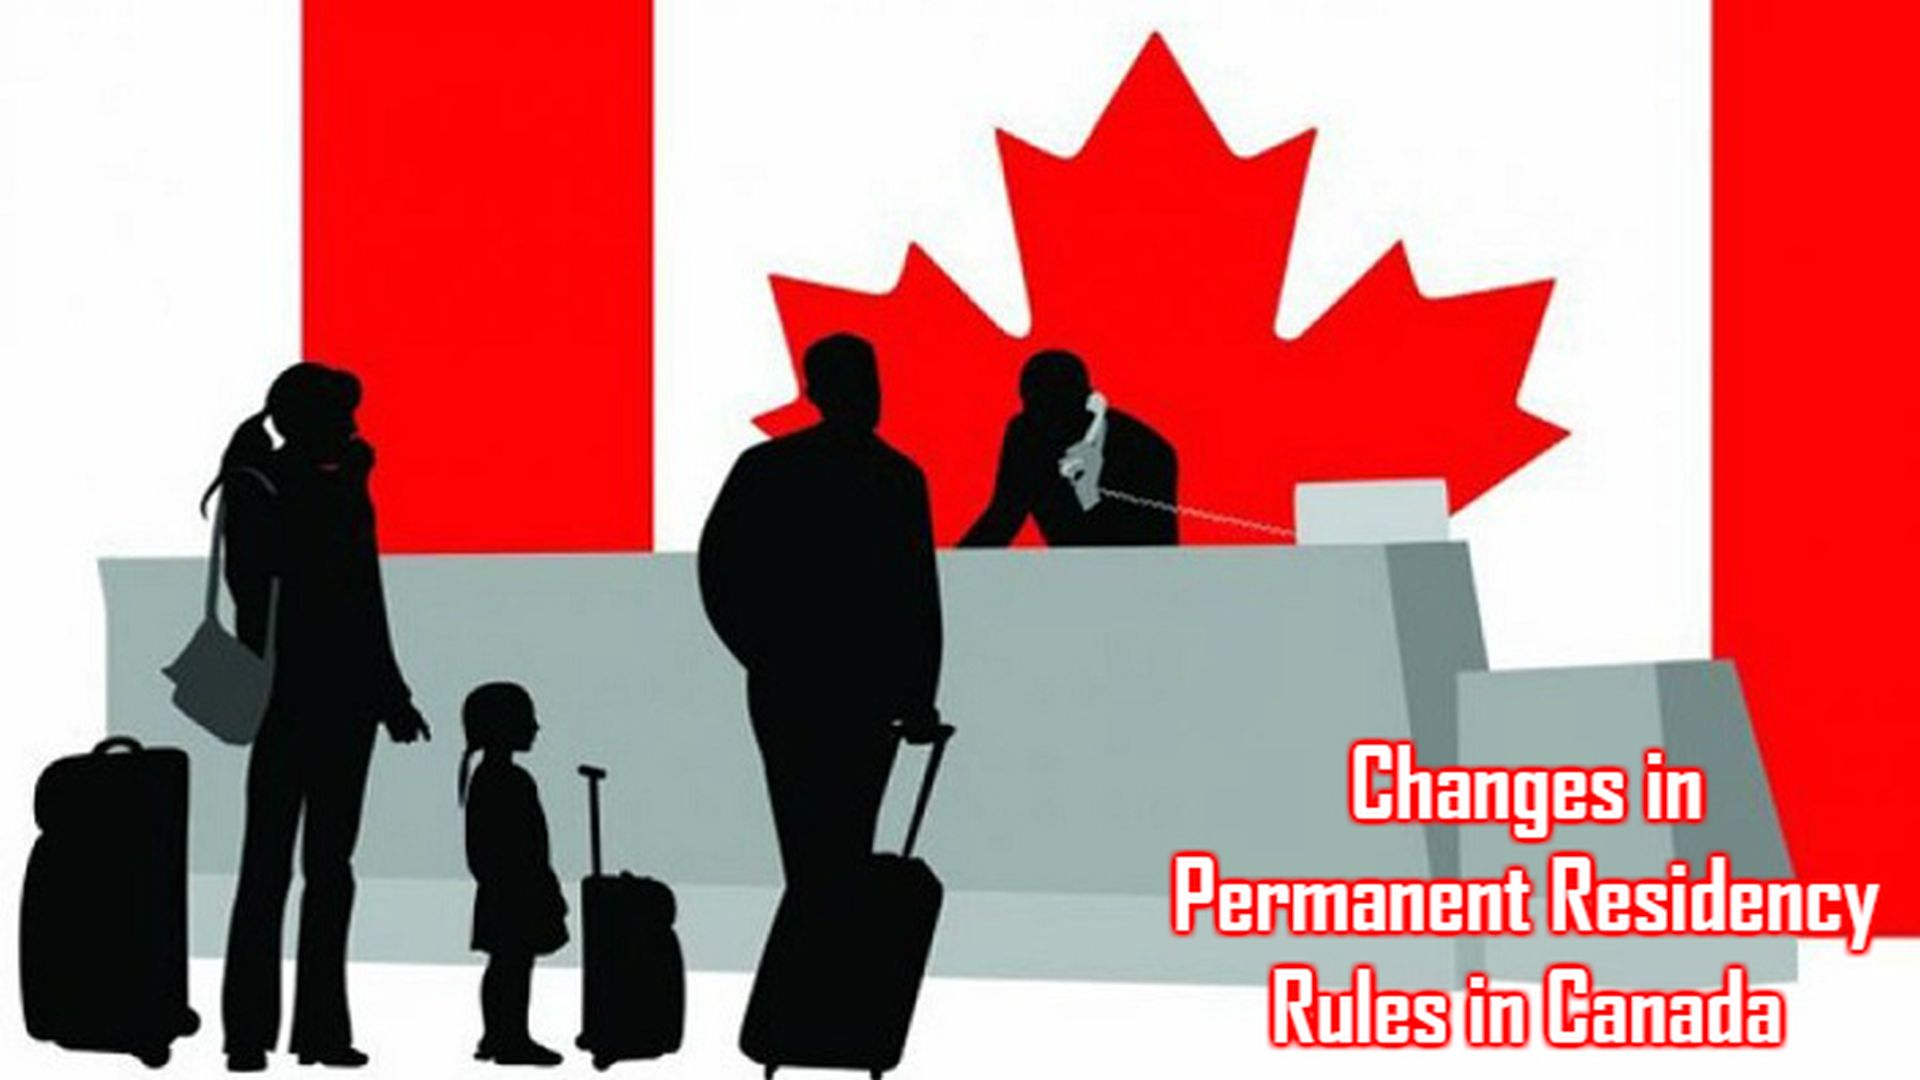 Canada is All Set to Announce New Rules for Permanent Residency Based on Medical Conditions in April 2018